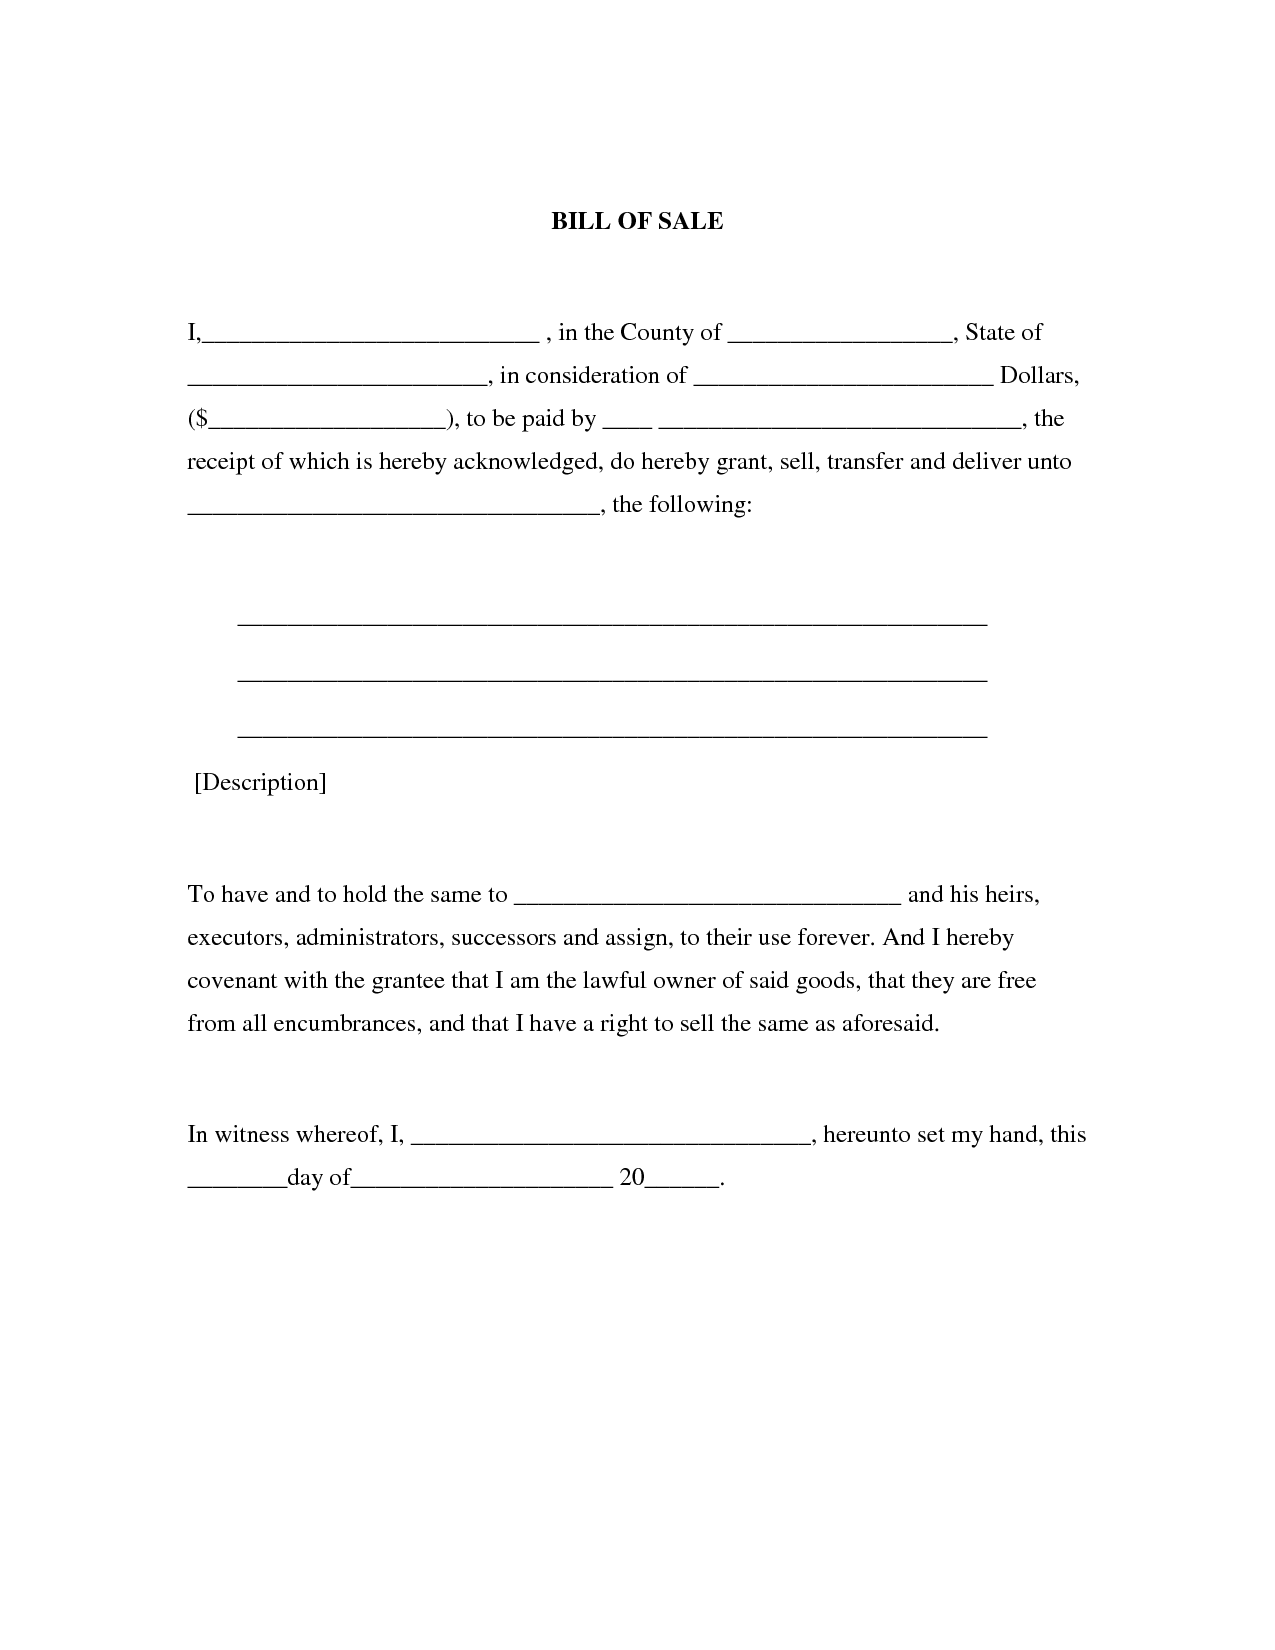 Bill of Sale Print Out | Generic Bill of Sale | Stuff to Buy ...